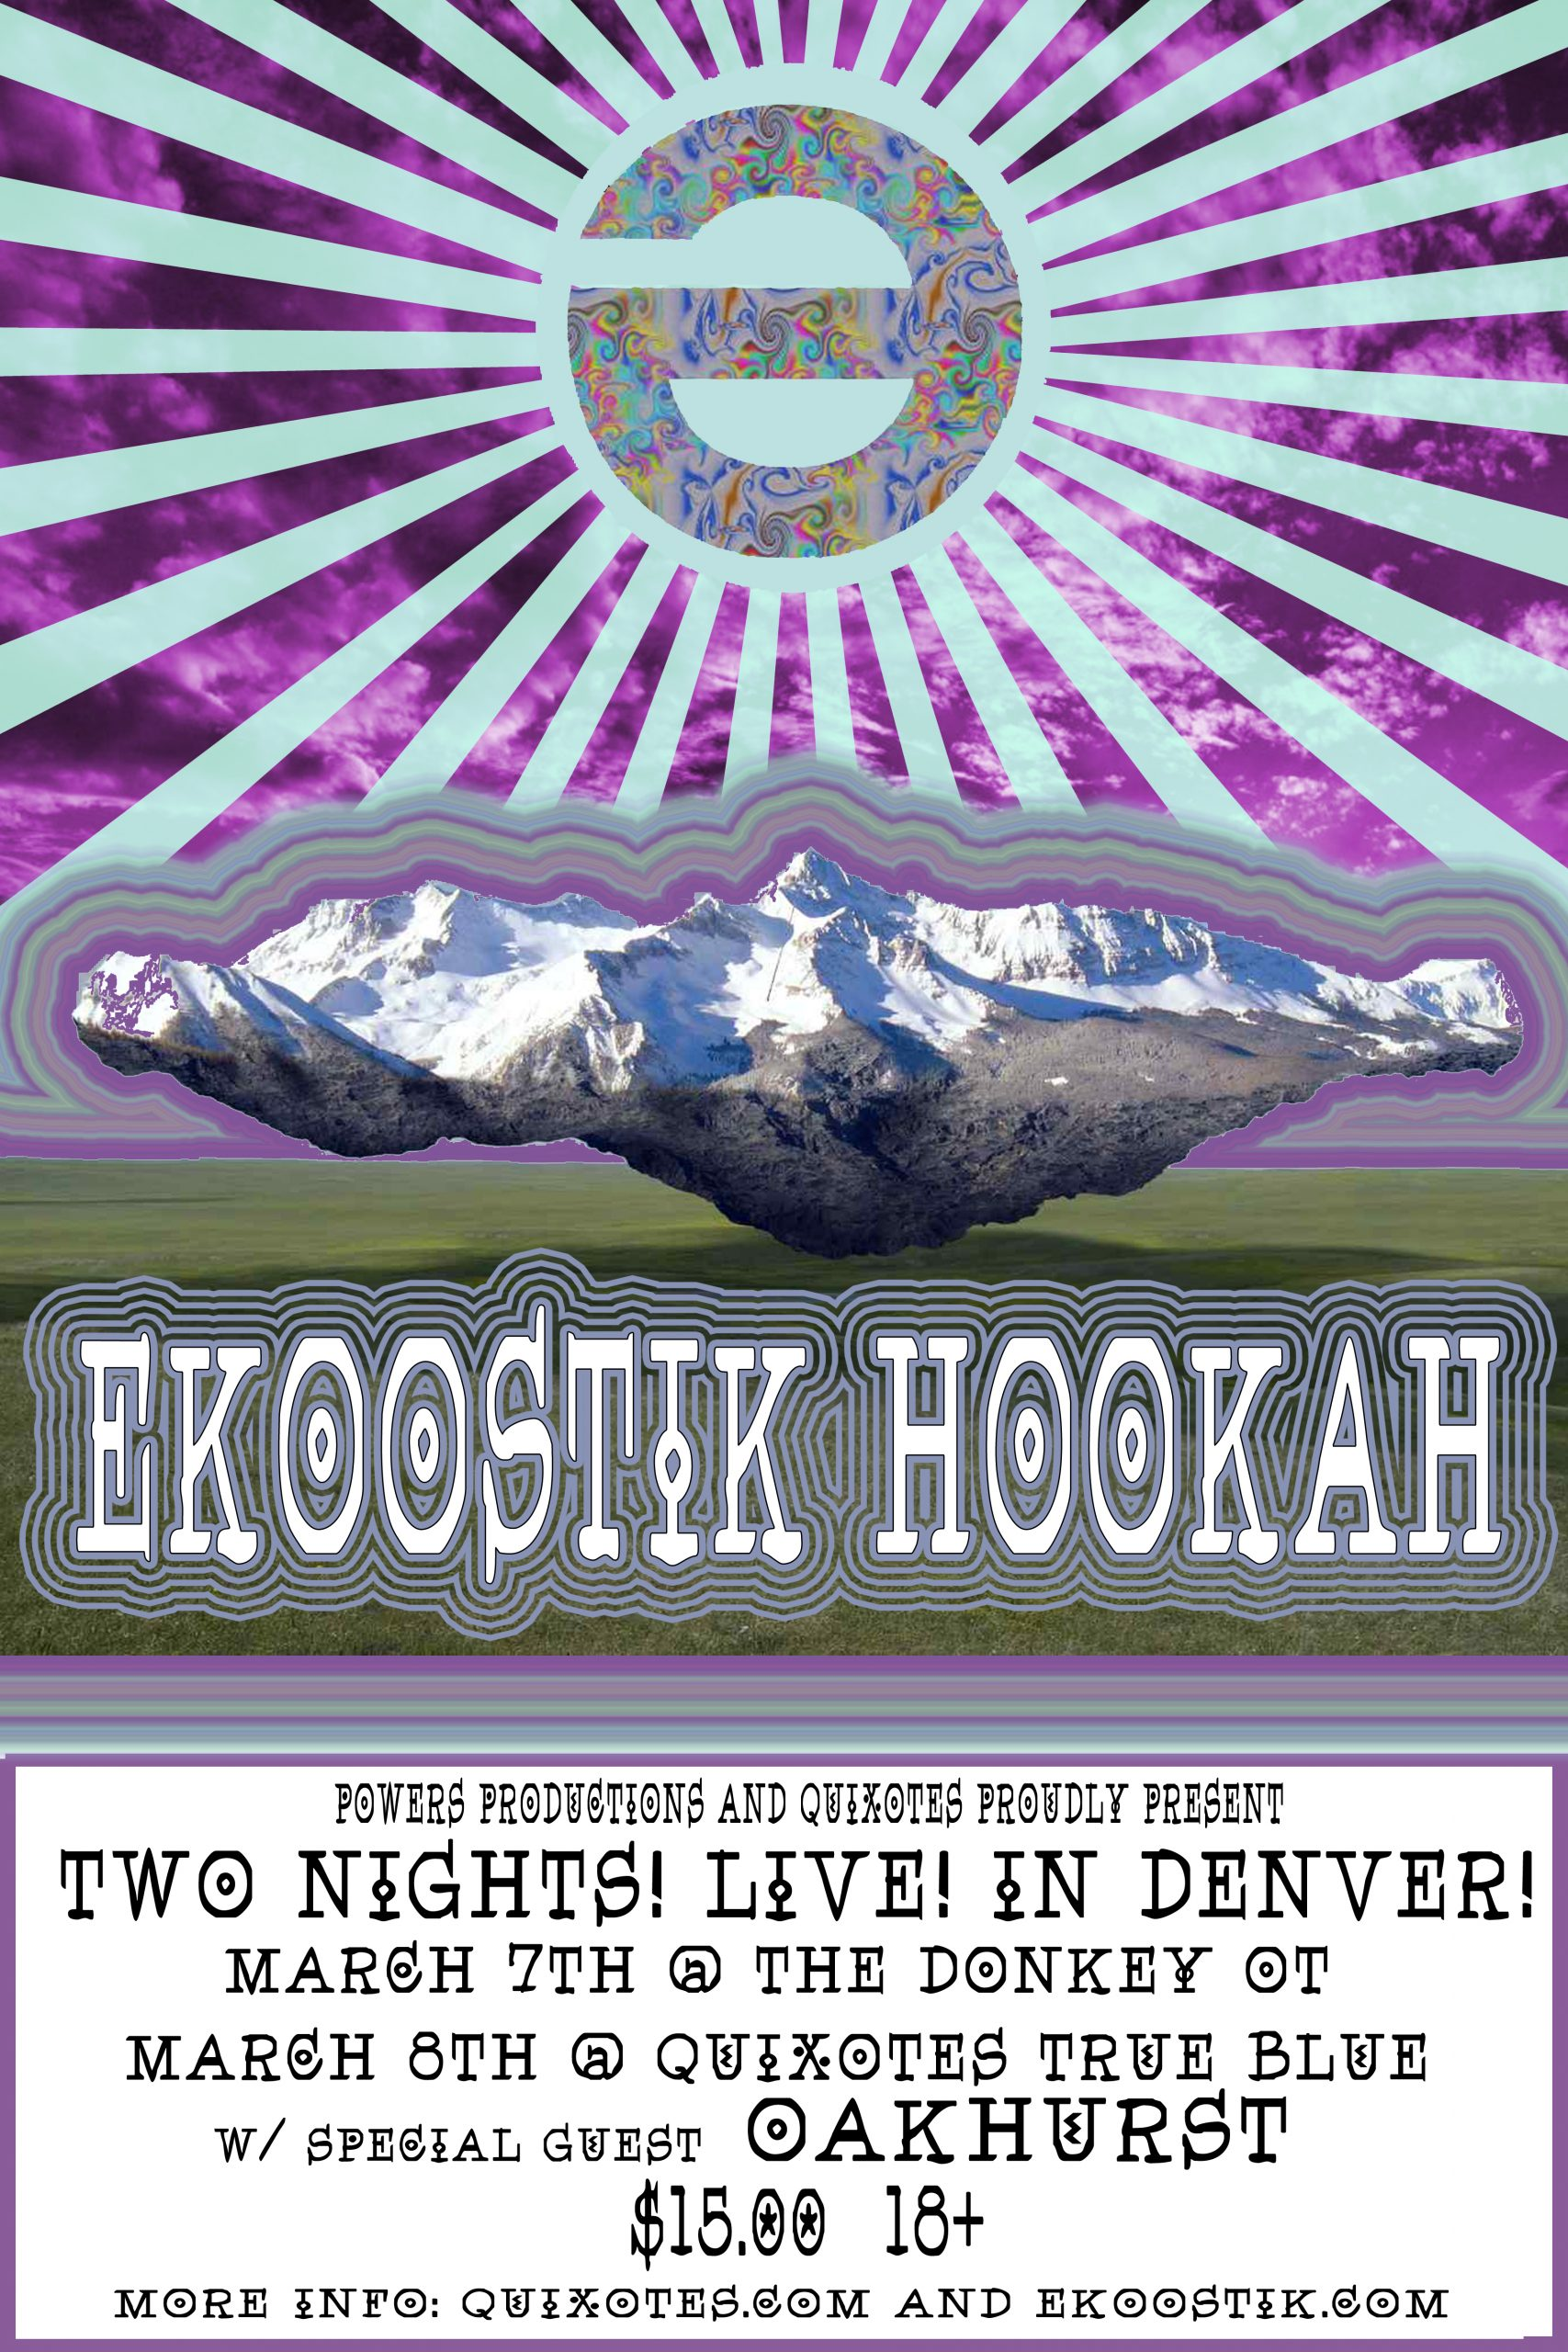 ekoostik hookah Announces Colorado tour and return to JAMmaica